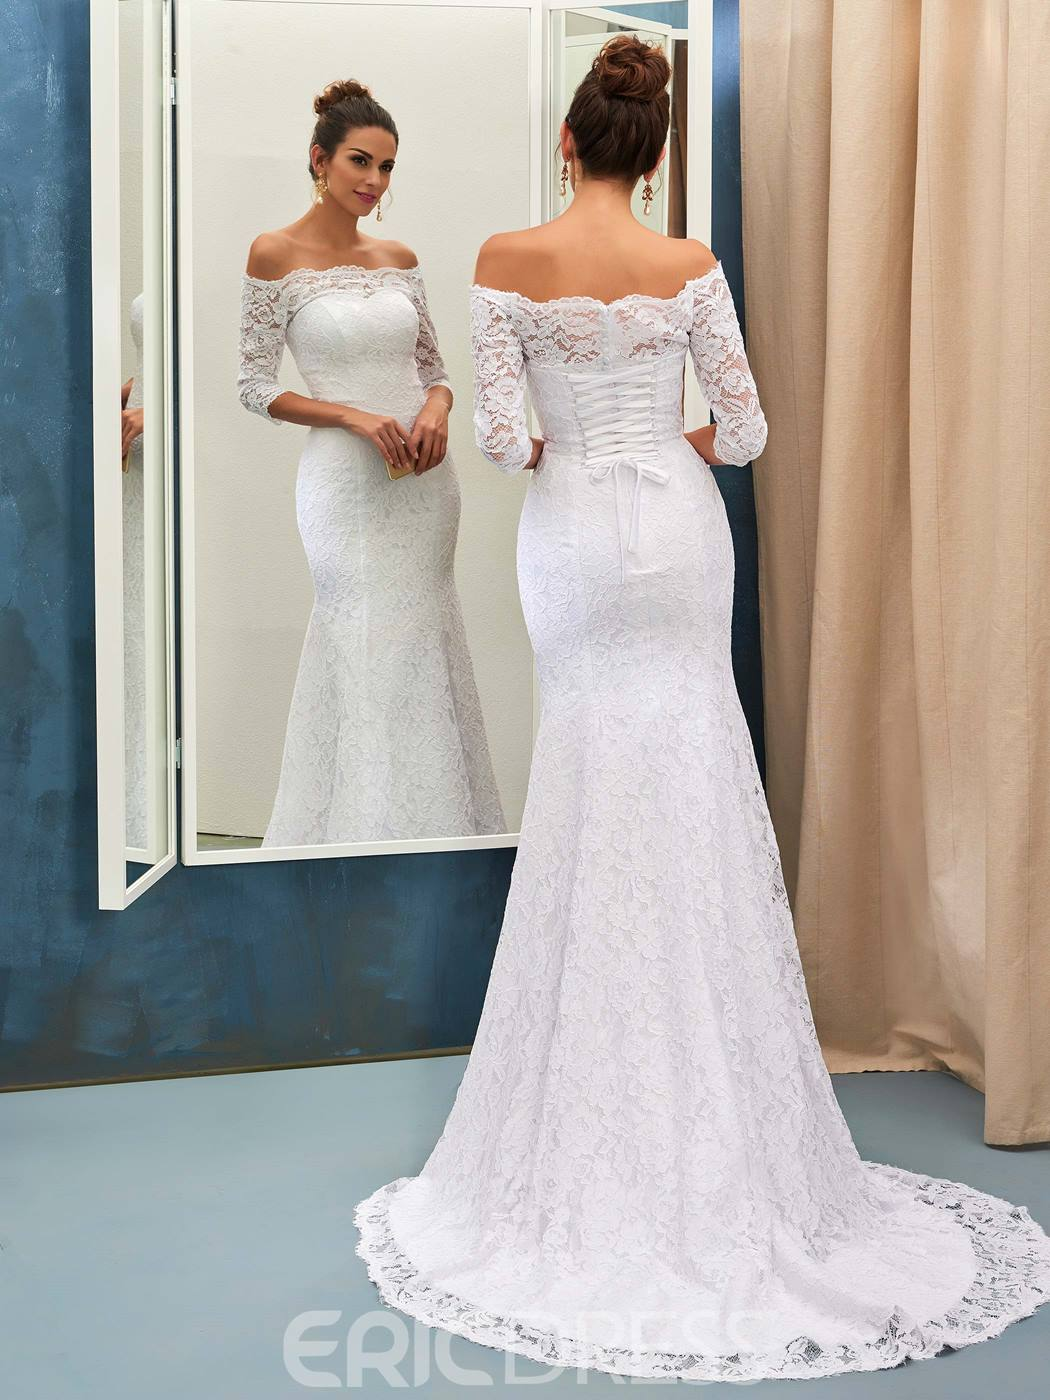 Ericdress Lace Mermaid Off The Shoulder Wedding Dress With ...